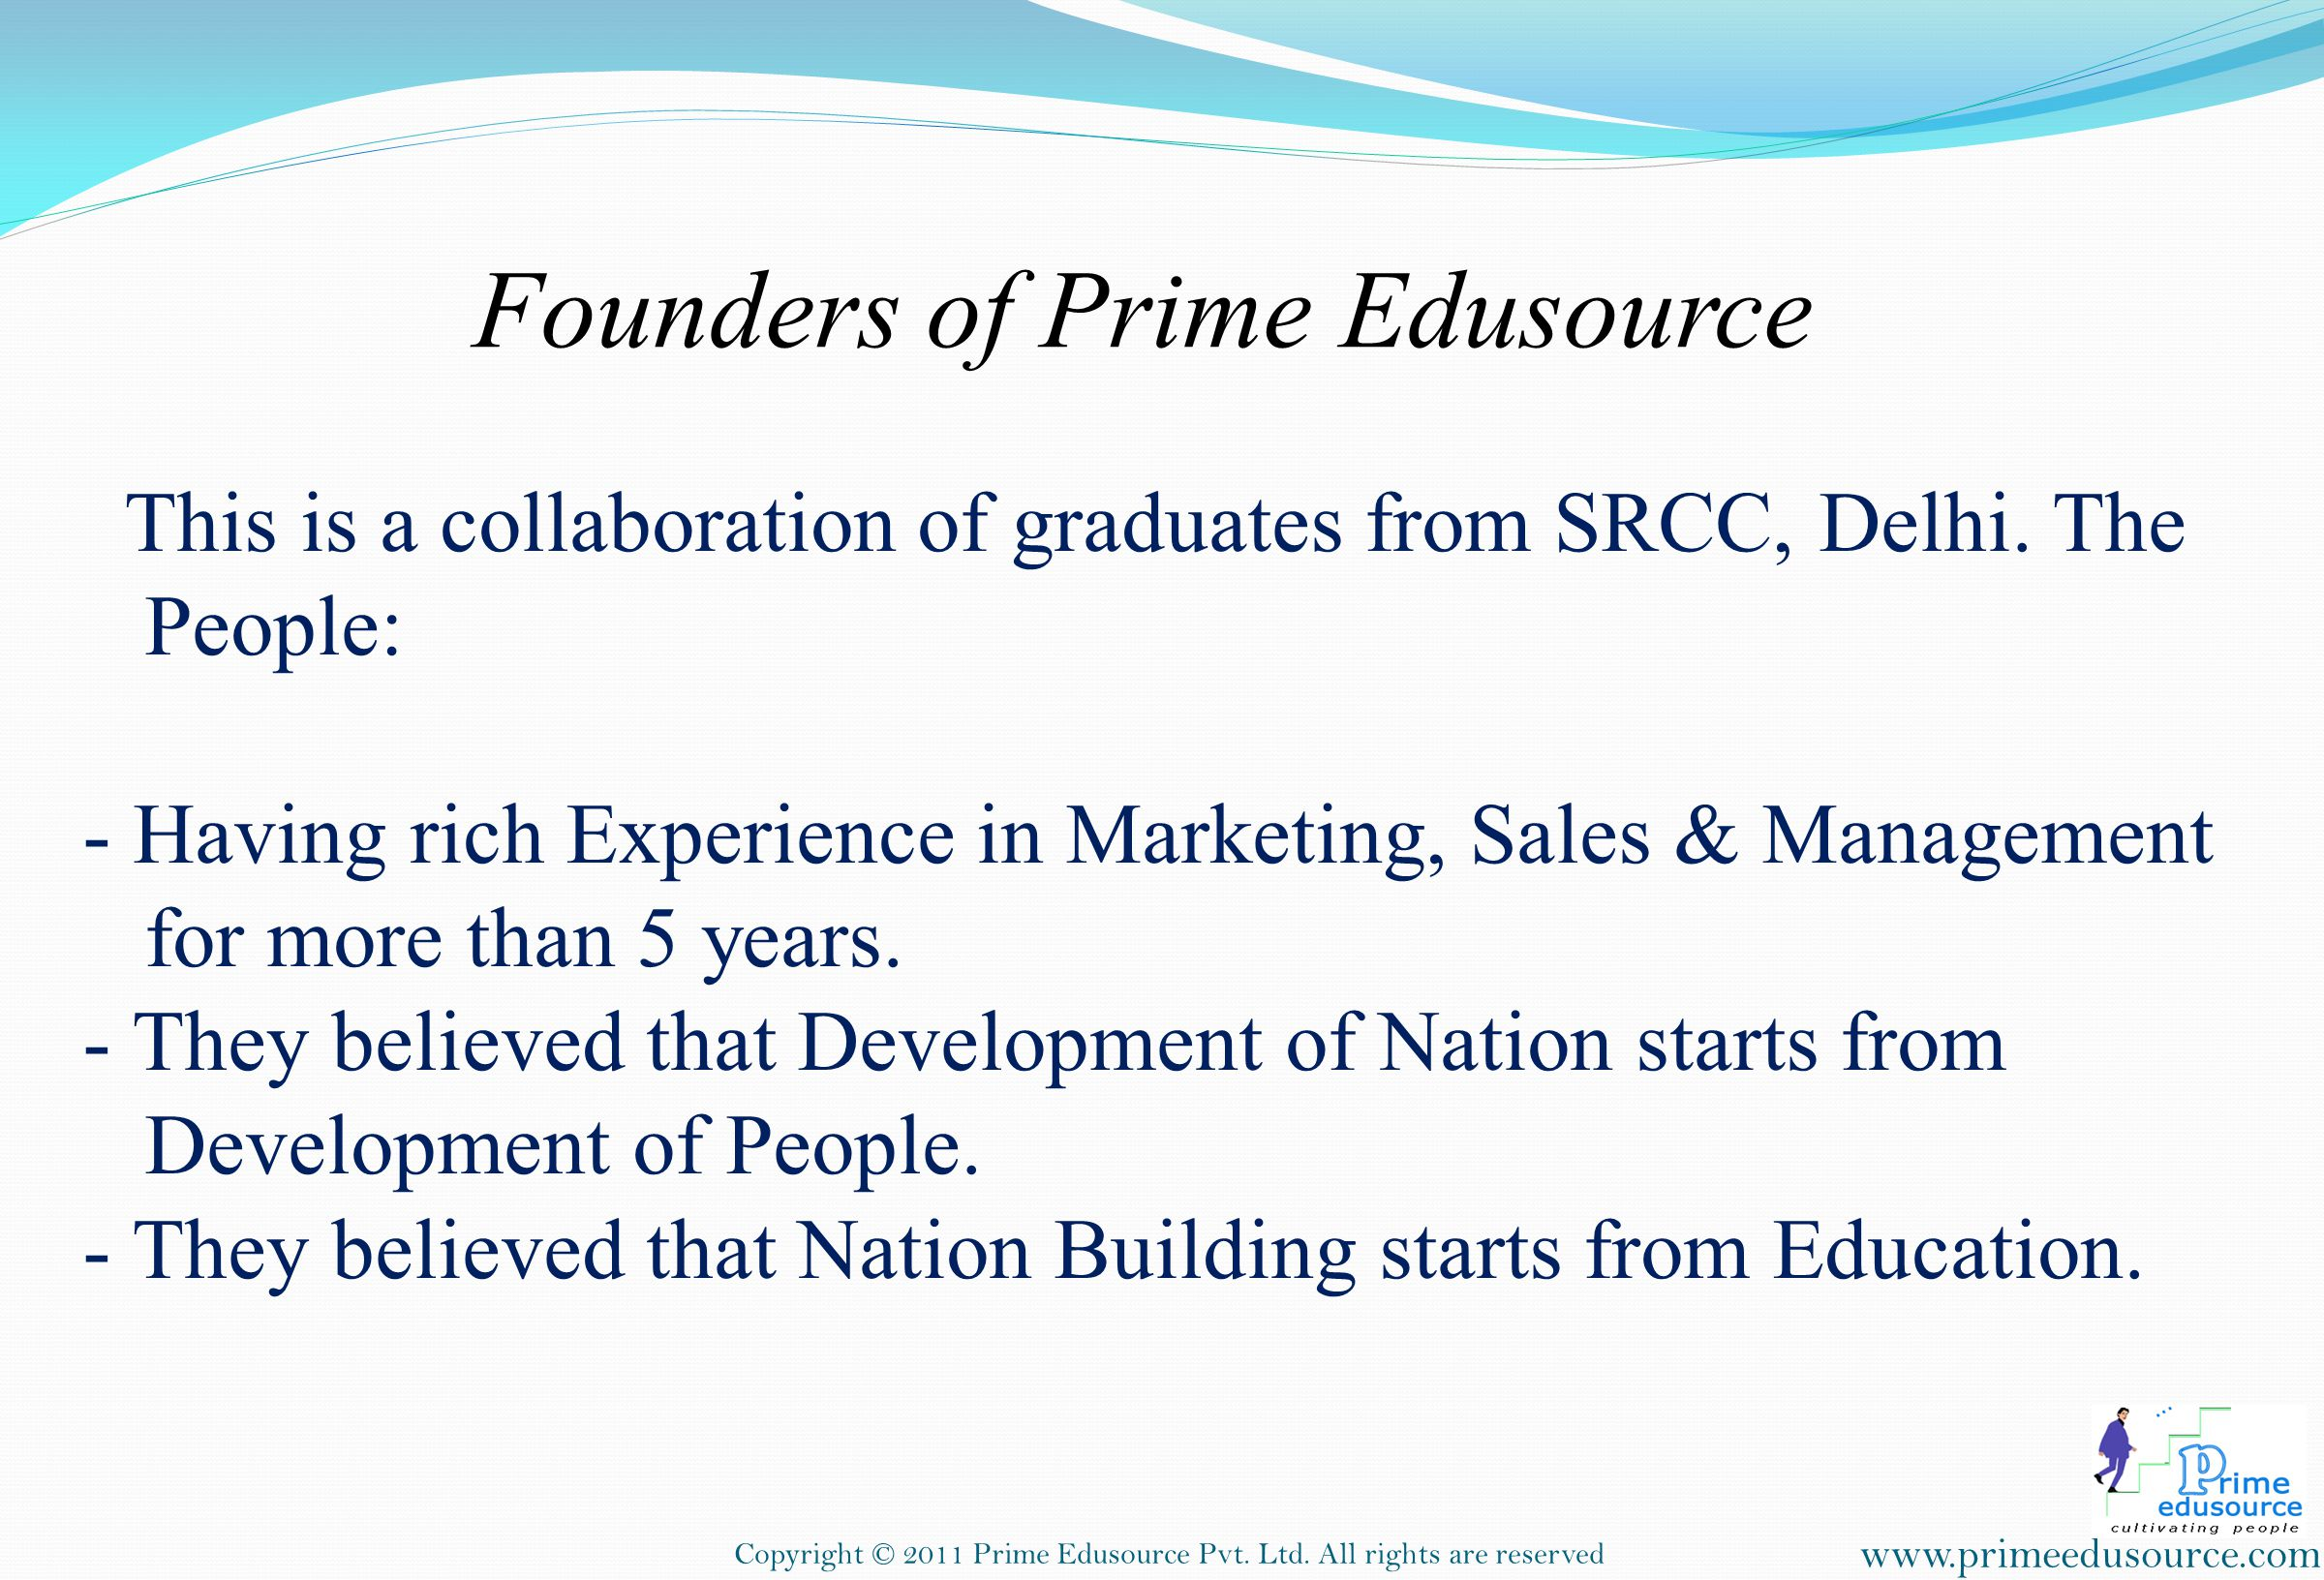 Founders of Prime Edusource